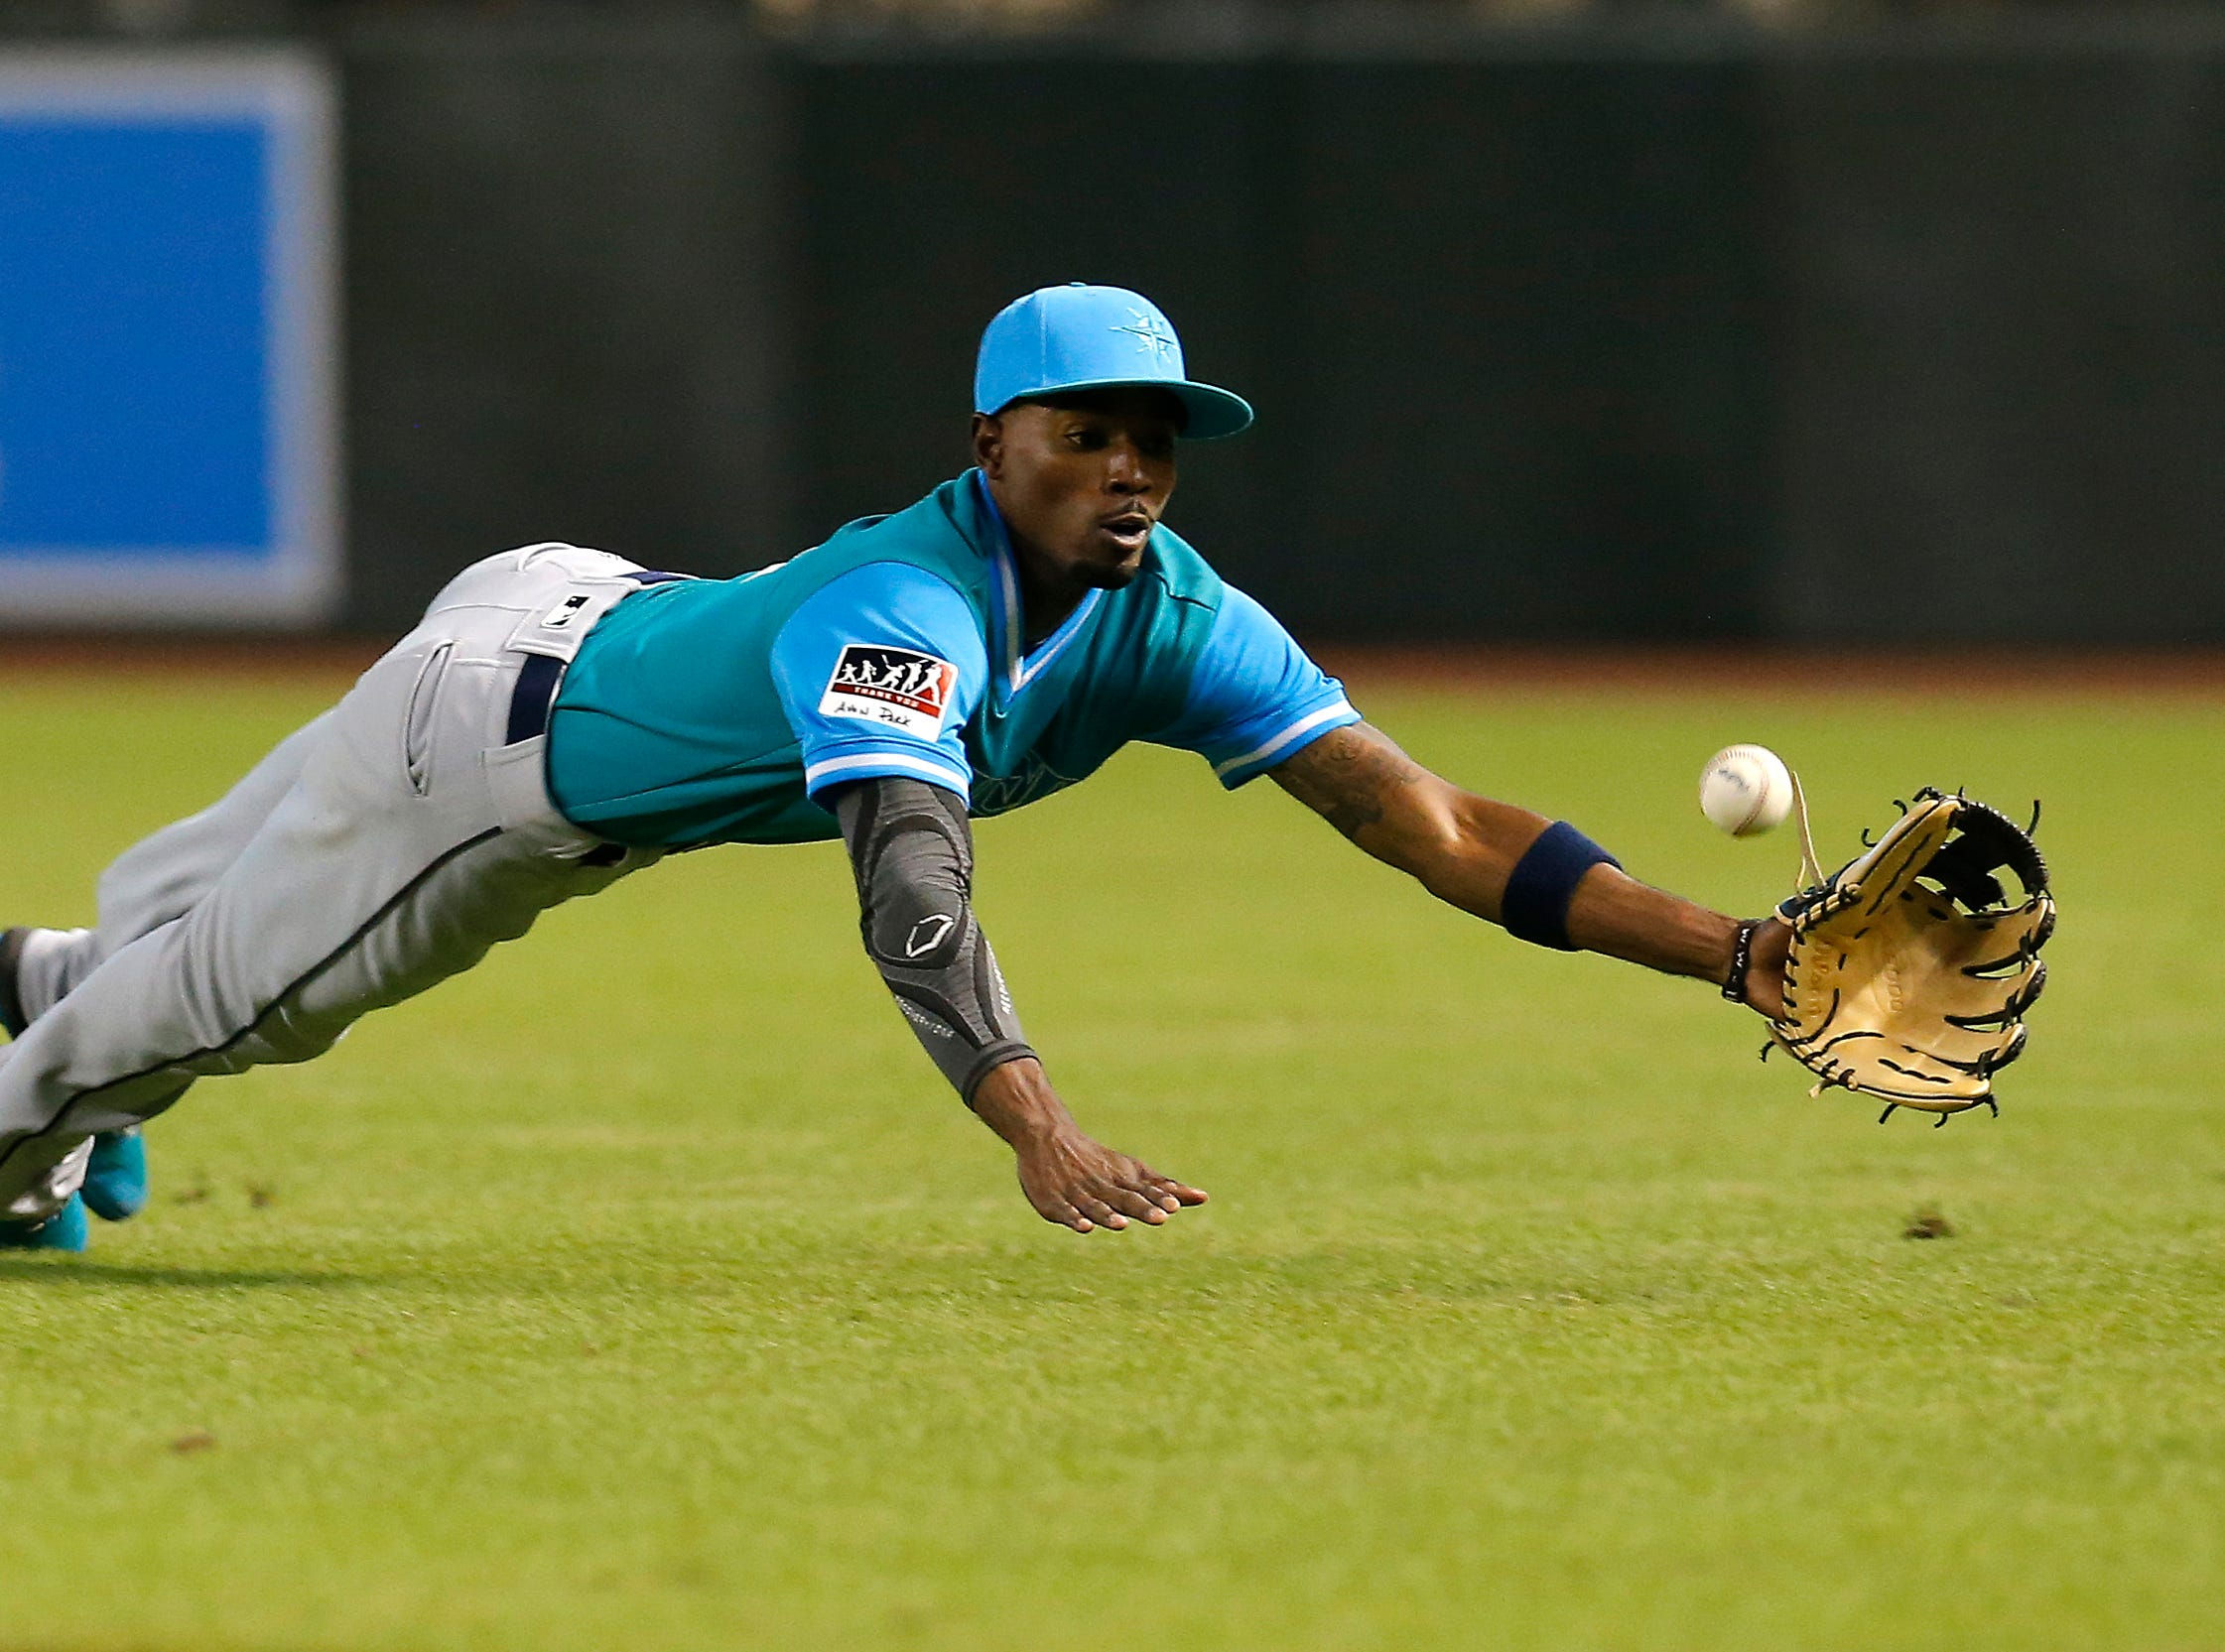 Seattle Mariners second baseman Dee Gordon makes the catch on a ball hit by Arizona Diamondbacks' Eduardo Escobar in the first inning during a baseball game Friday, Aug. 24, 2018, in Phoenix.